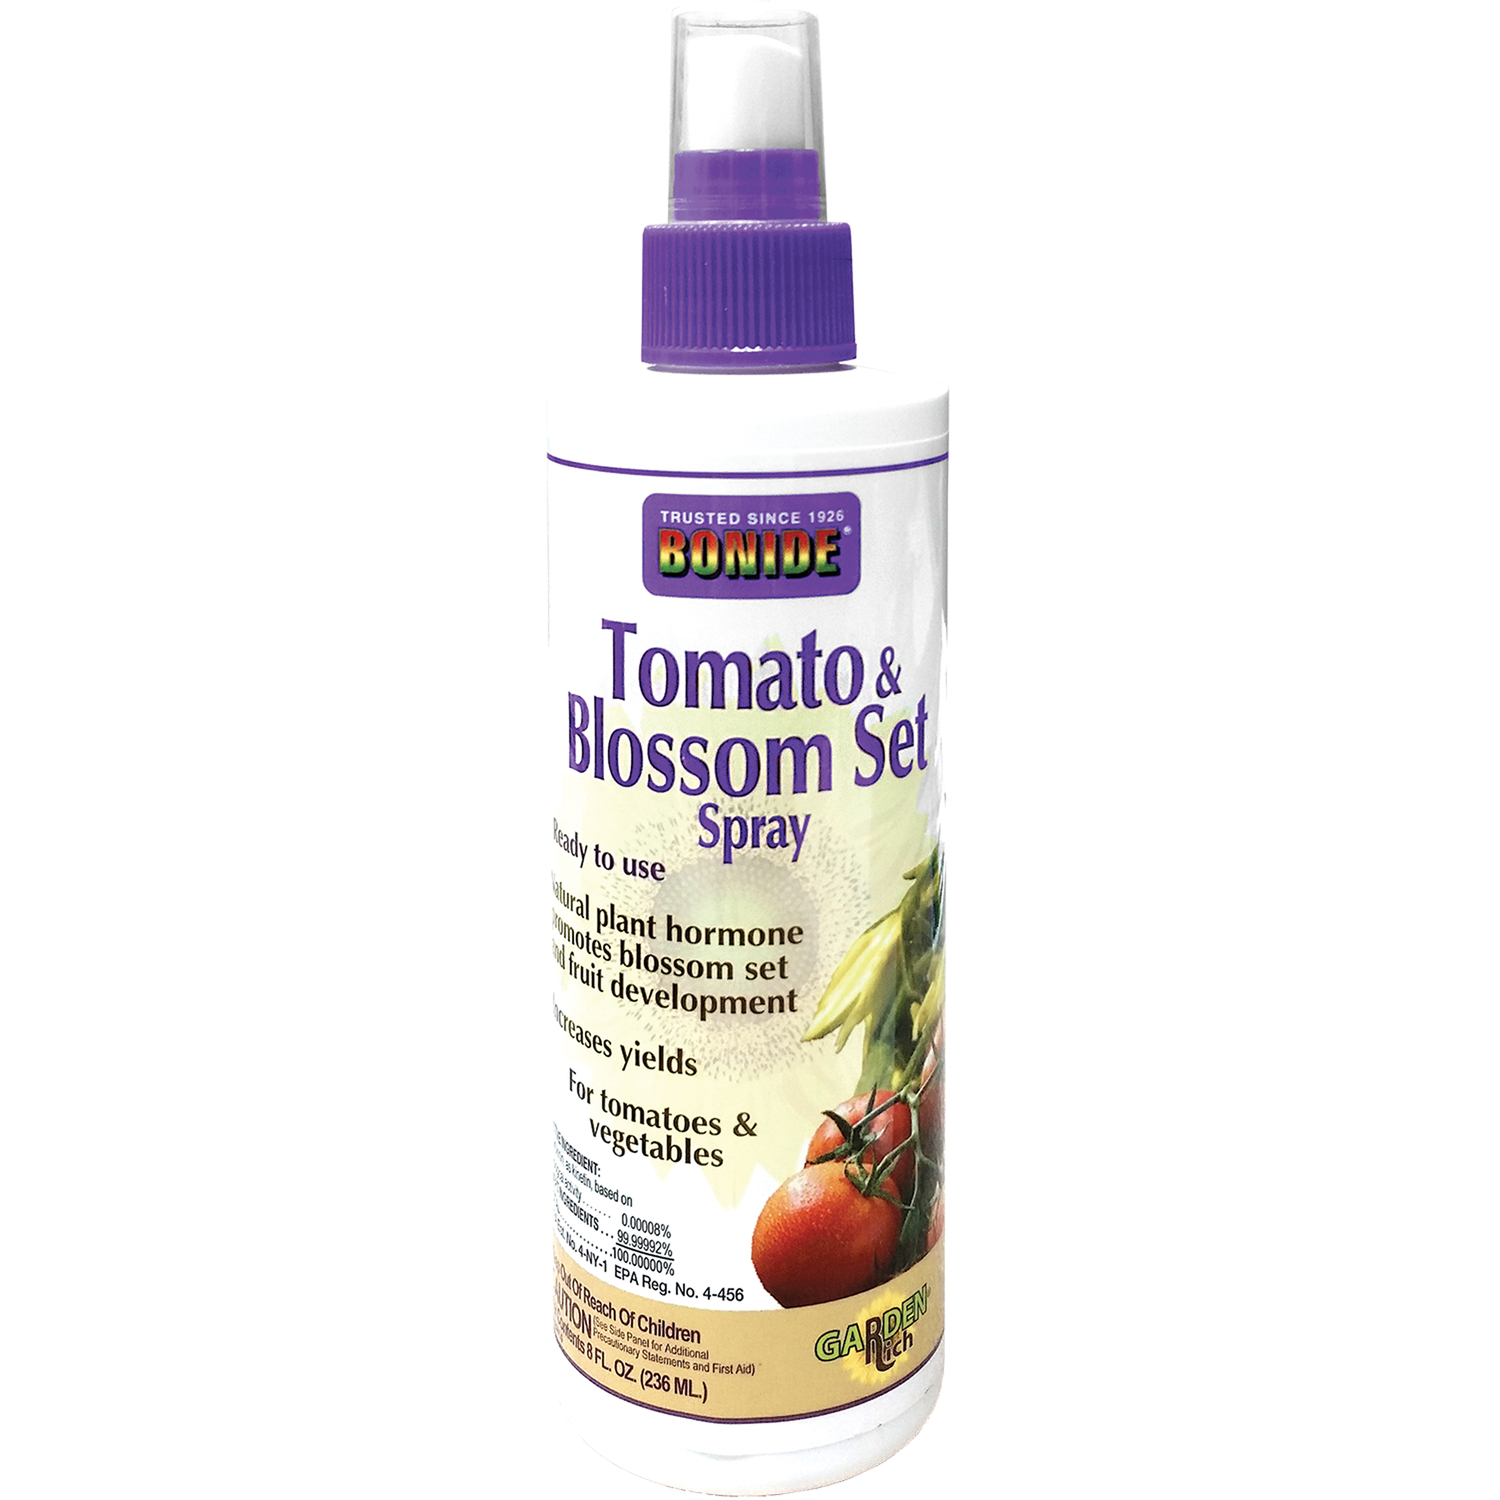 Bonide  Tomato & Blossom Set Spray  Liquid  Bud & Bloom Booster  8 oz.